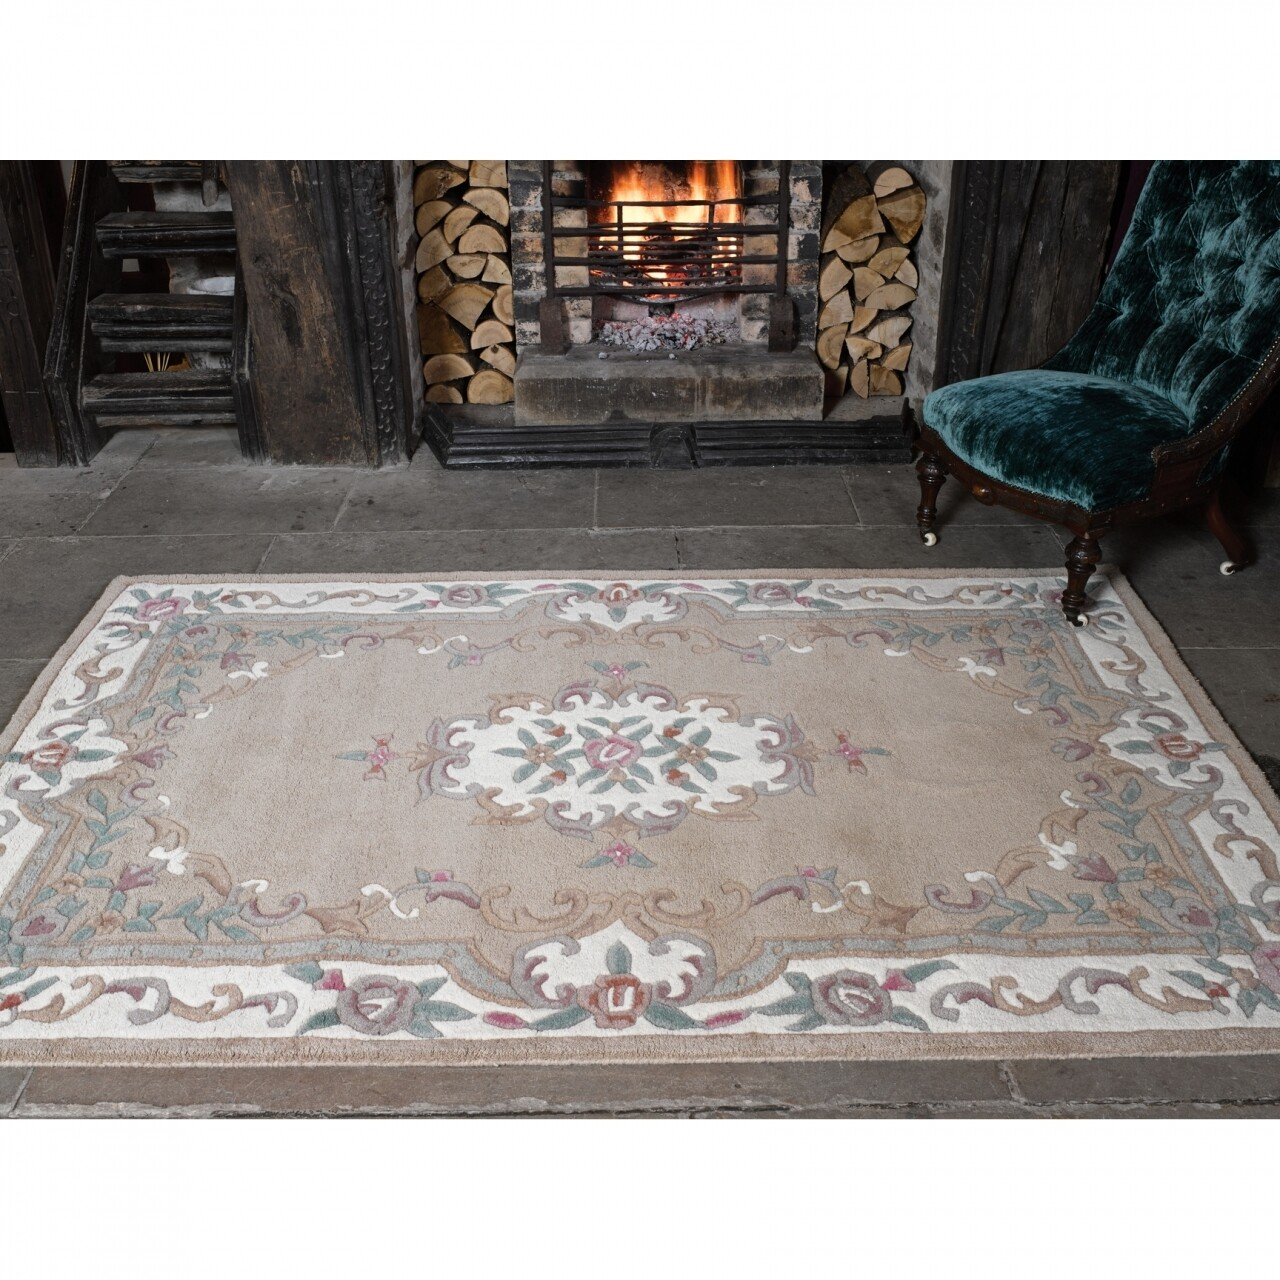 Covor Fawn, Flair Rugs, 60 x 120 cm, 100% lana, multicolor